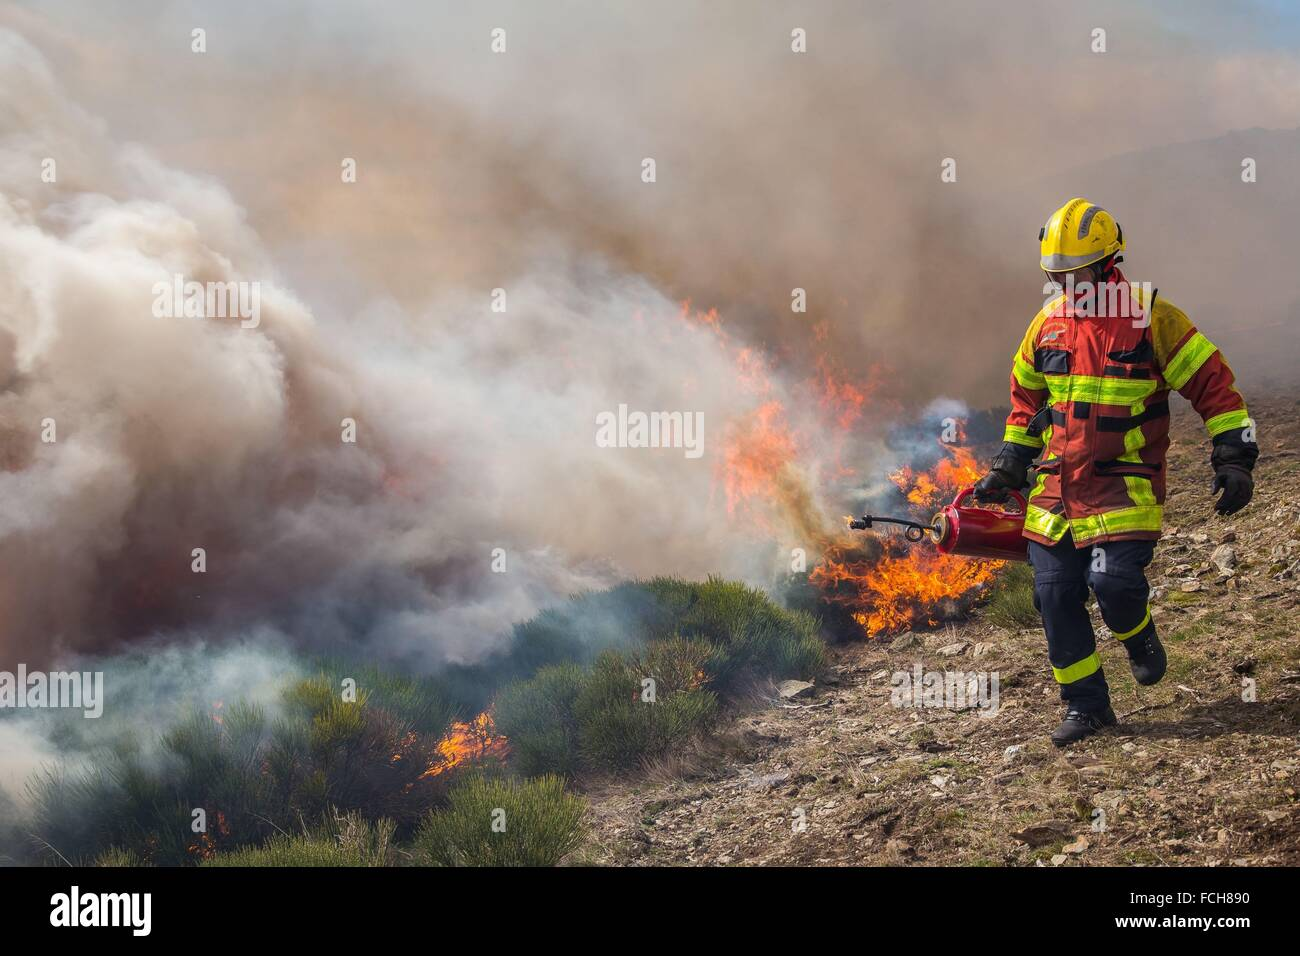 TACTICAL FIRE, FIREFIGHTERS - Stock Image